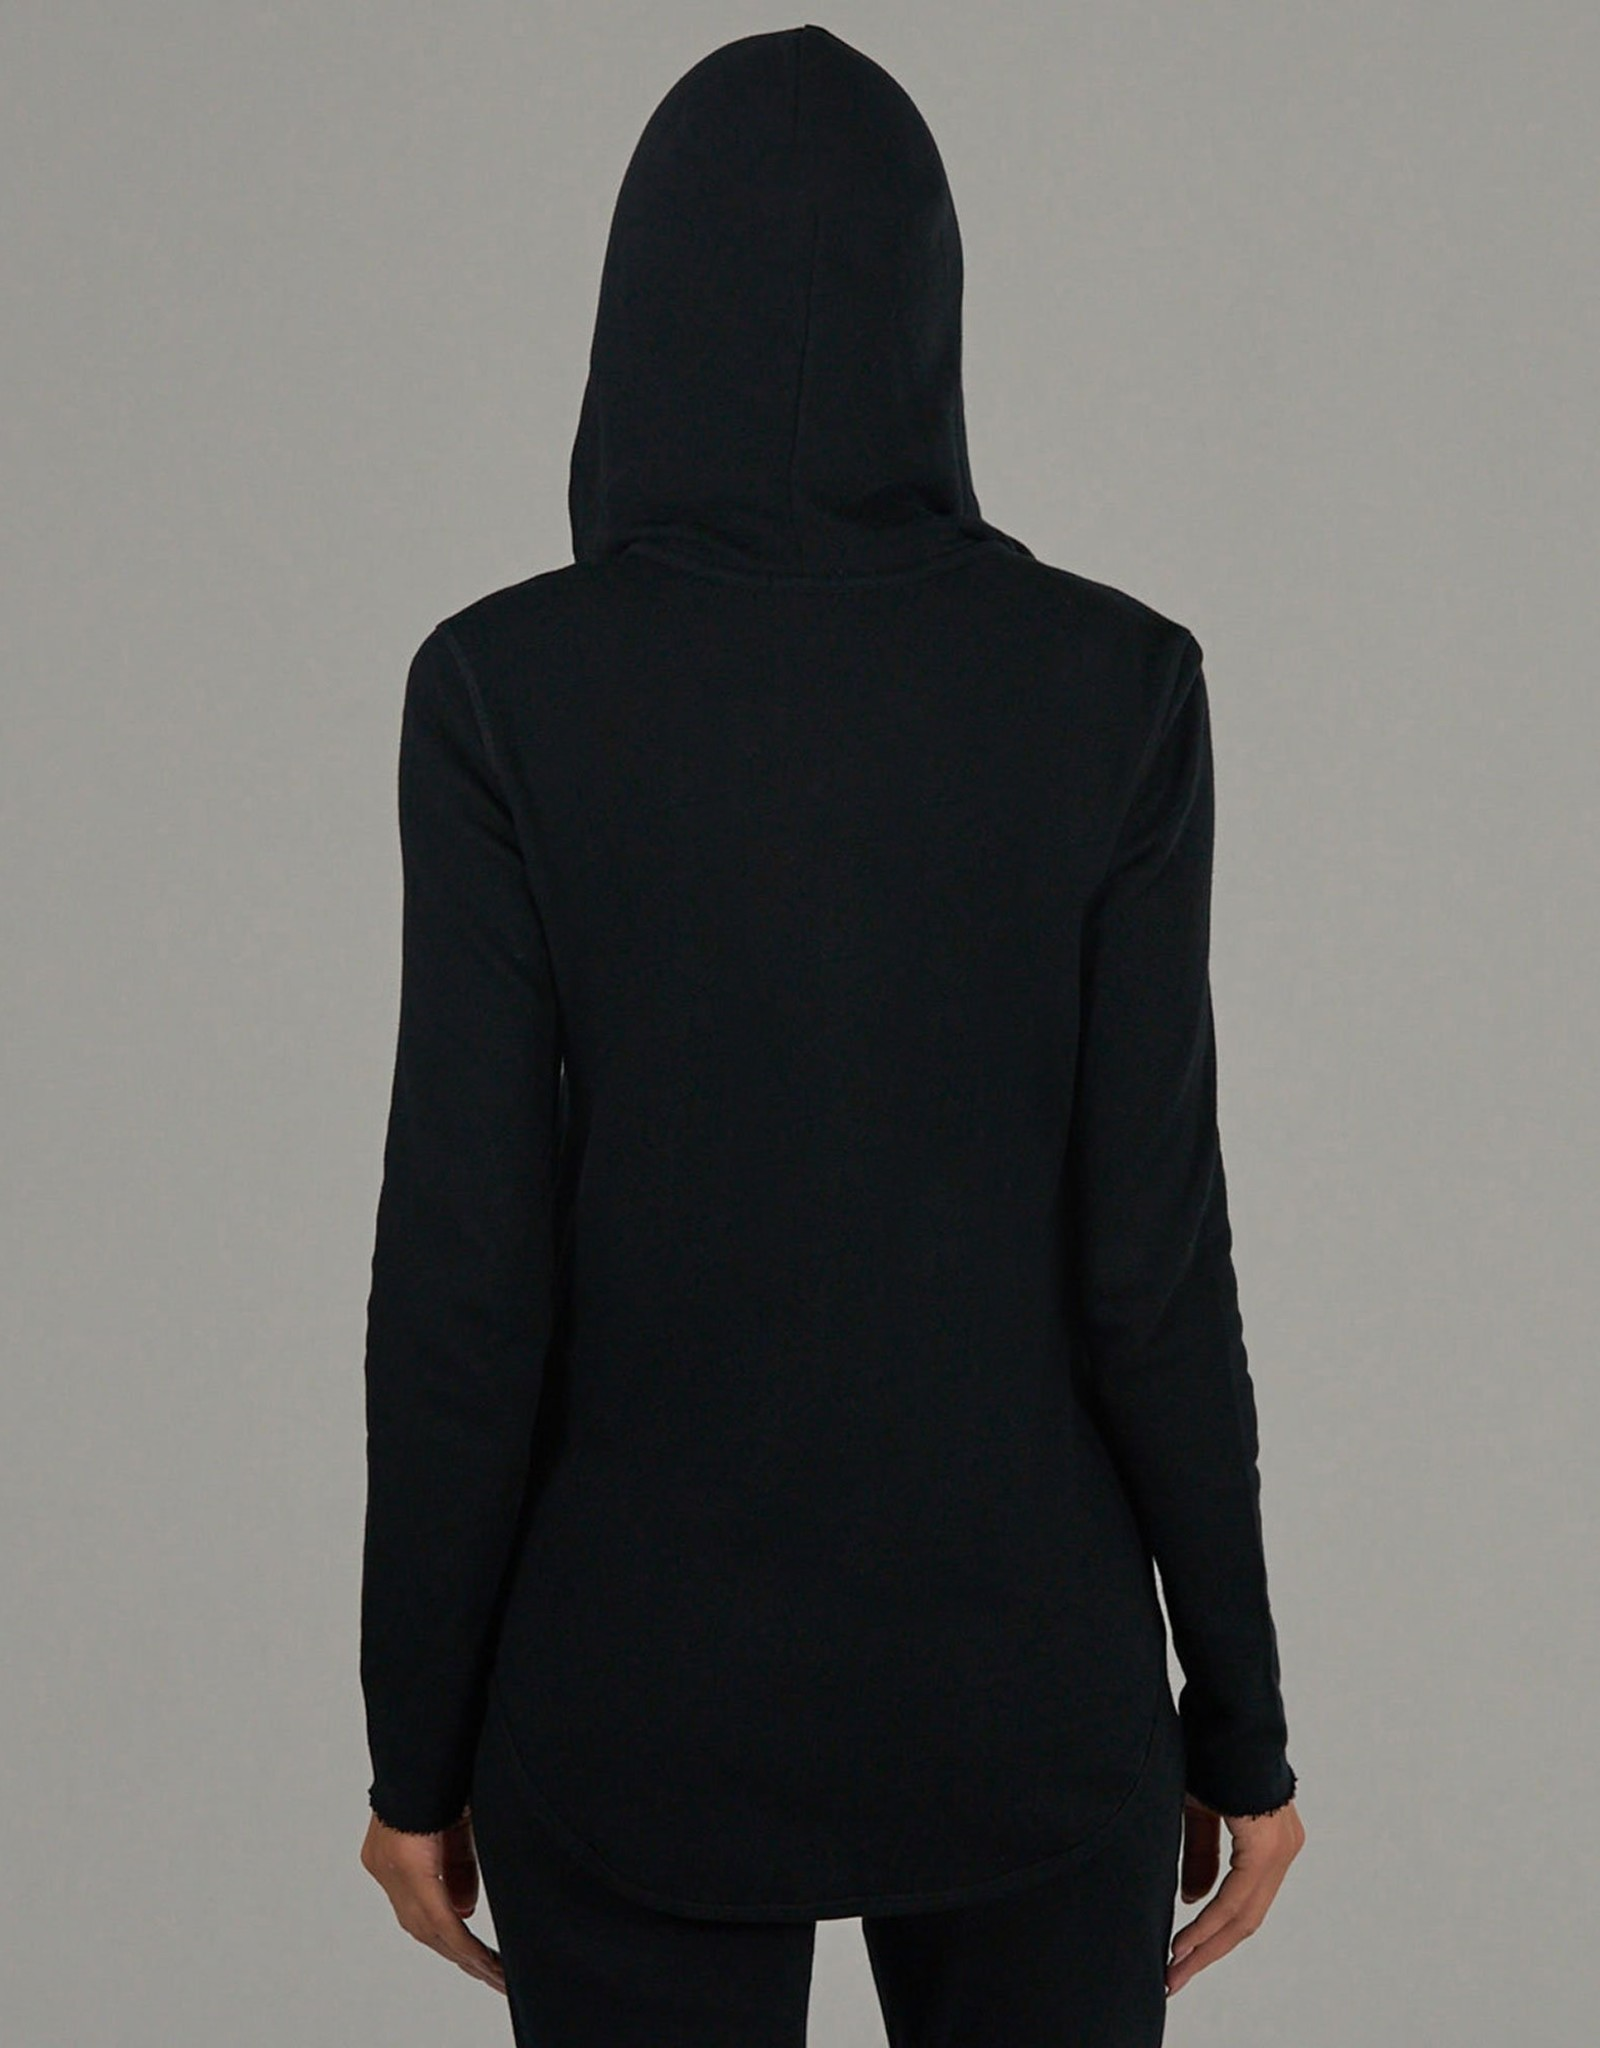 ATM AW1803-F0 French Terry Zip Hoodie